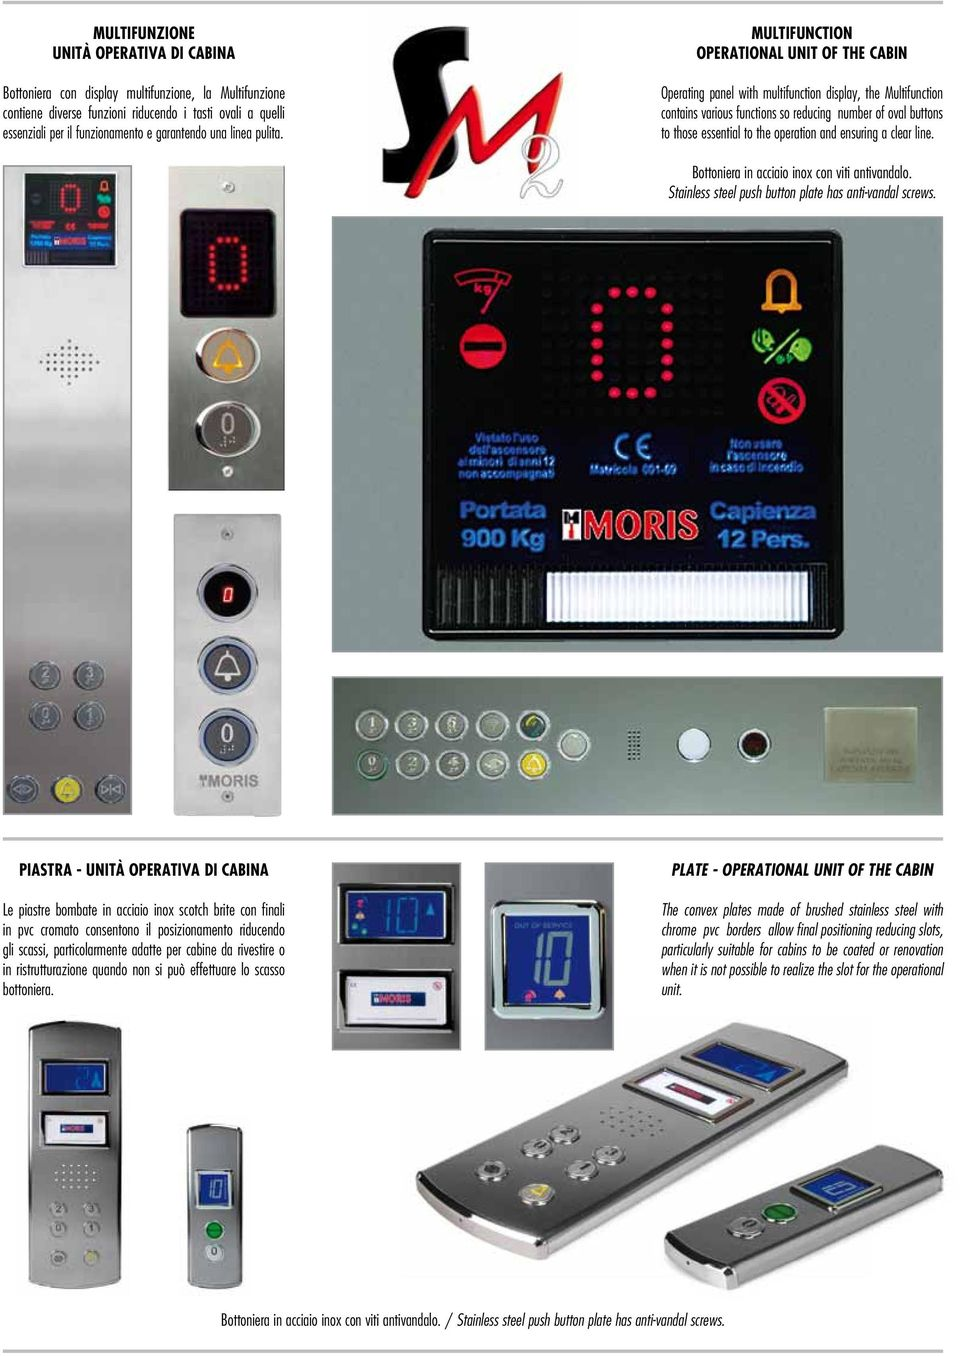 Multifunction Operational unit of the cabin Operating panel with multifunction display, the Multifunction contains various functions so reducing number of oval buttons to those essential to the